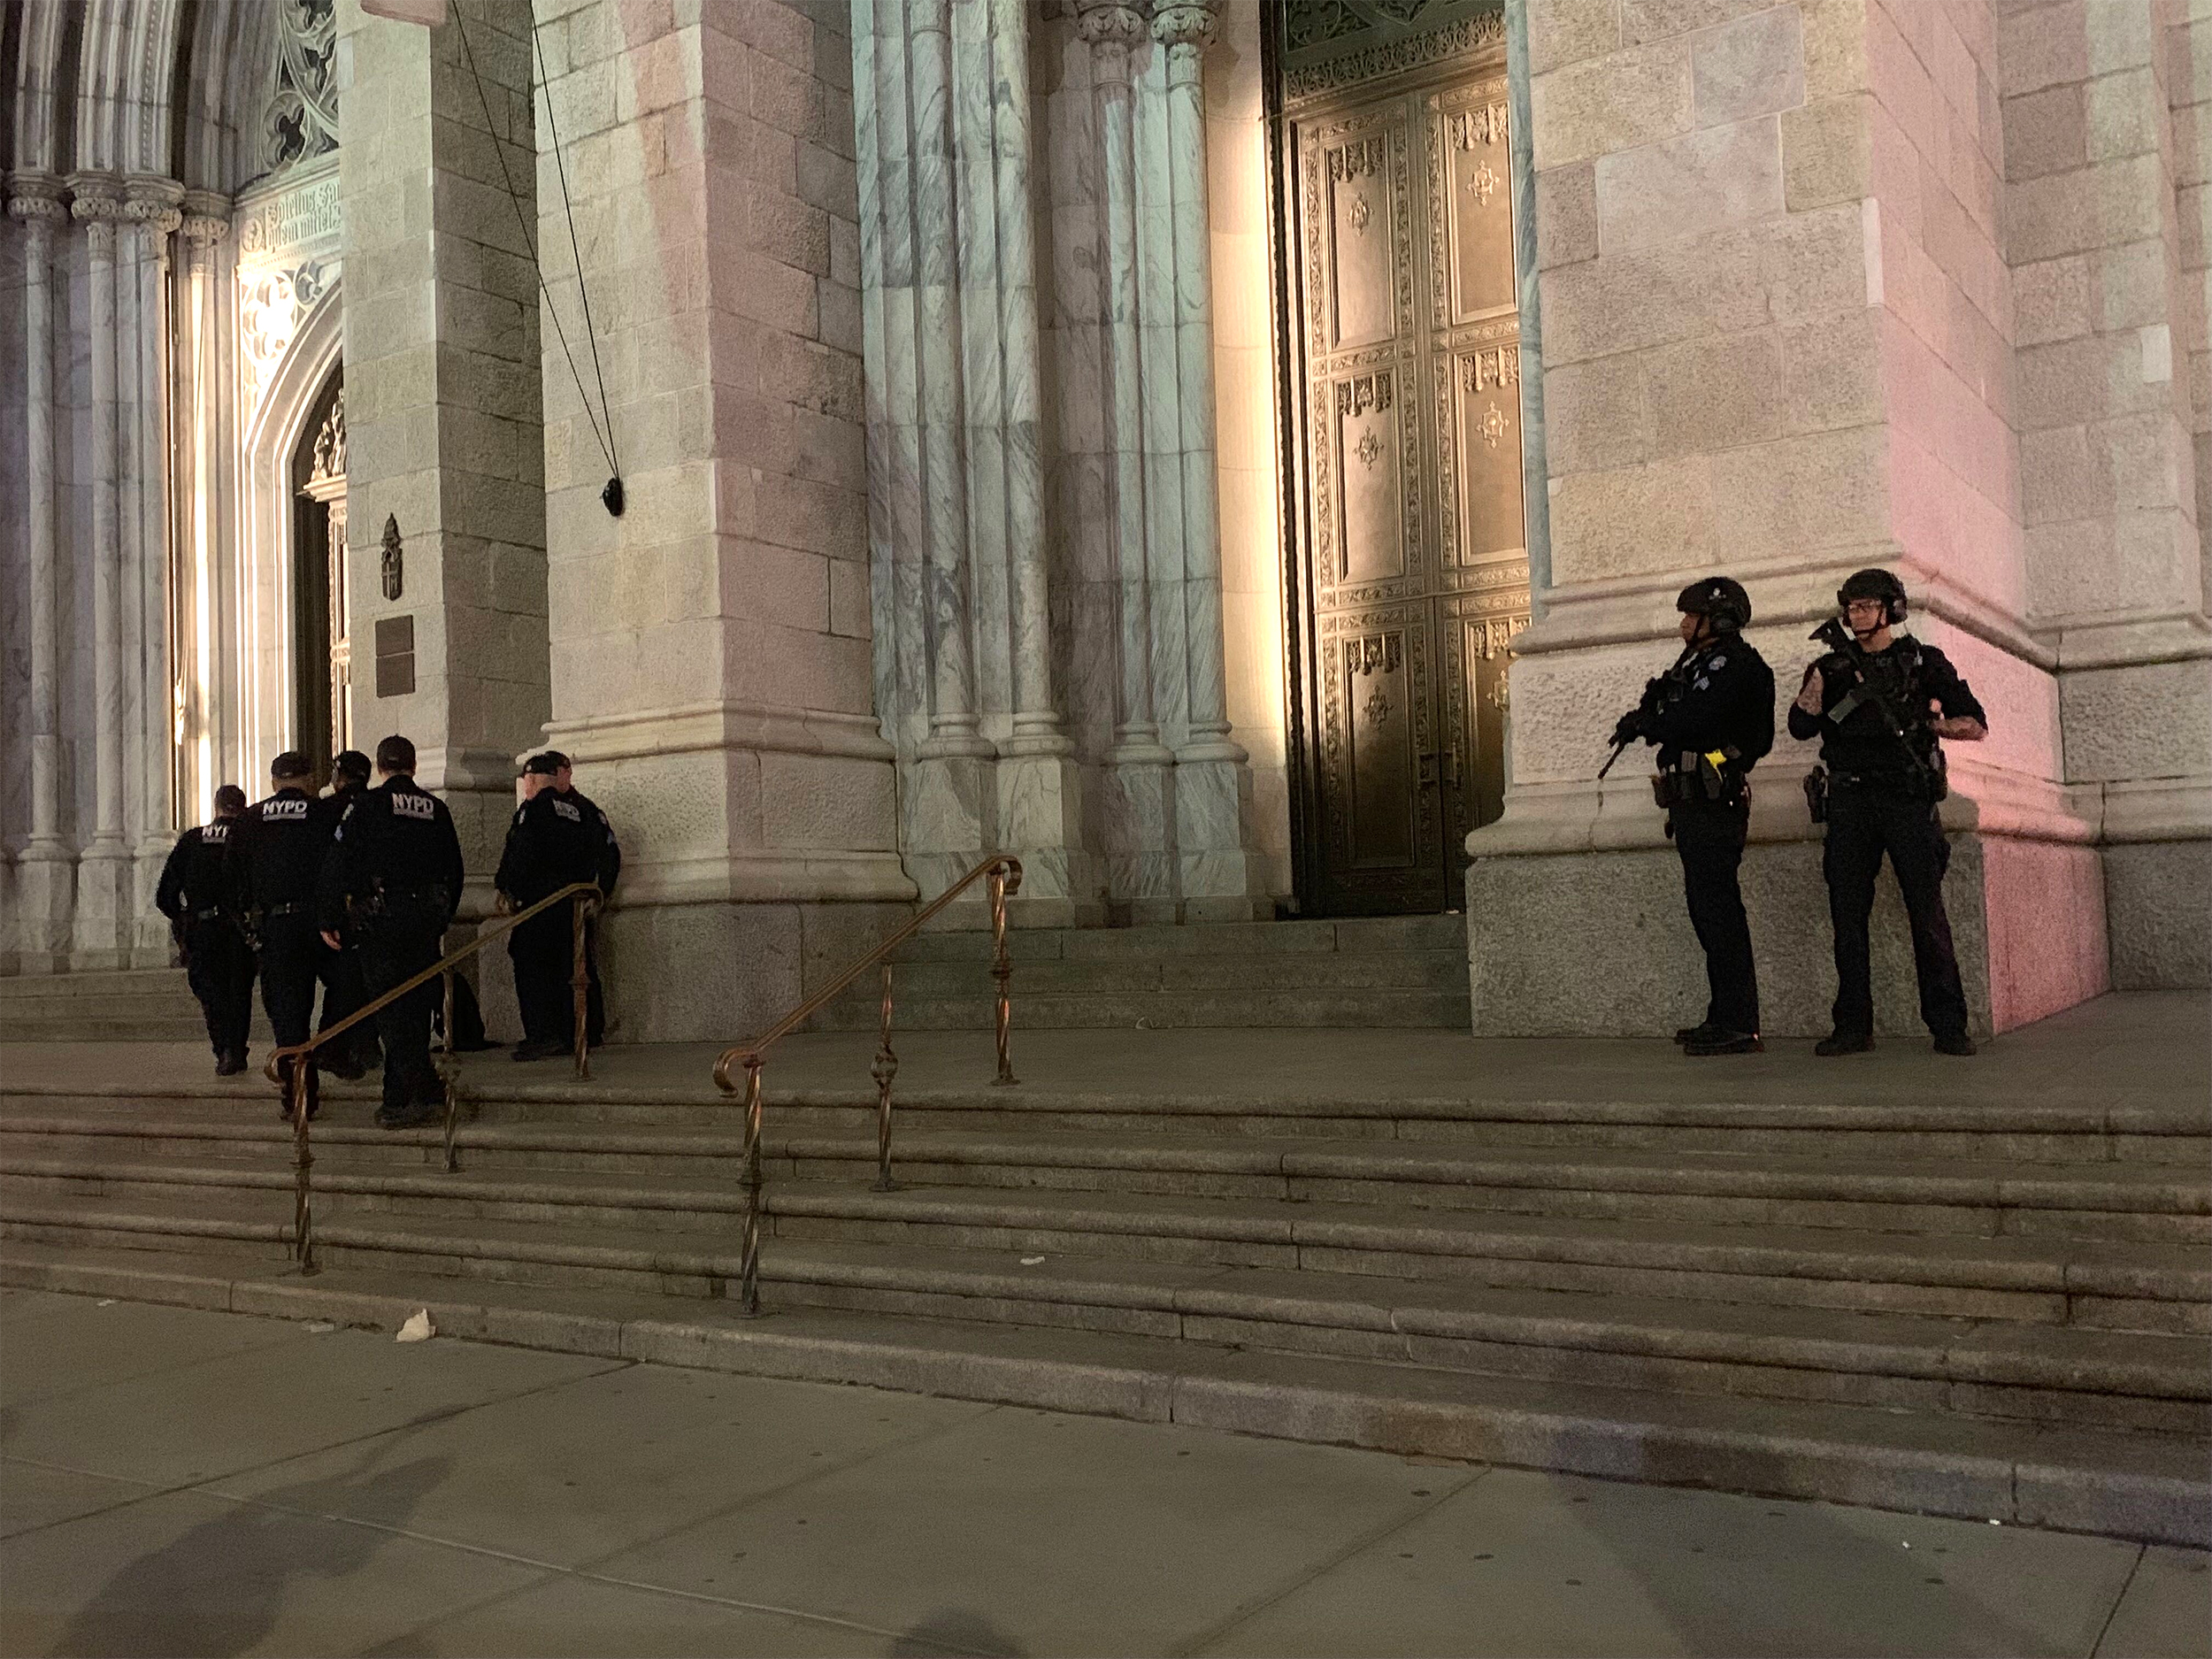 nbcnews.com - Man with gas cans arrested at New York's famed St. Patrick's Cathedral